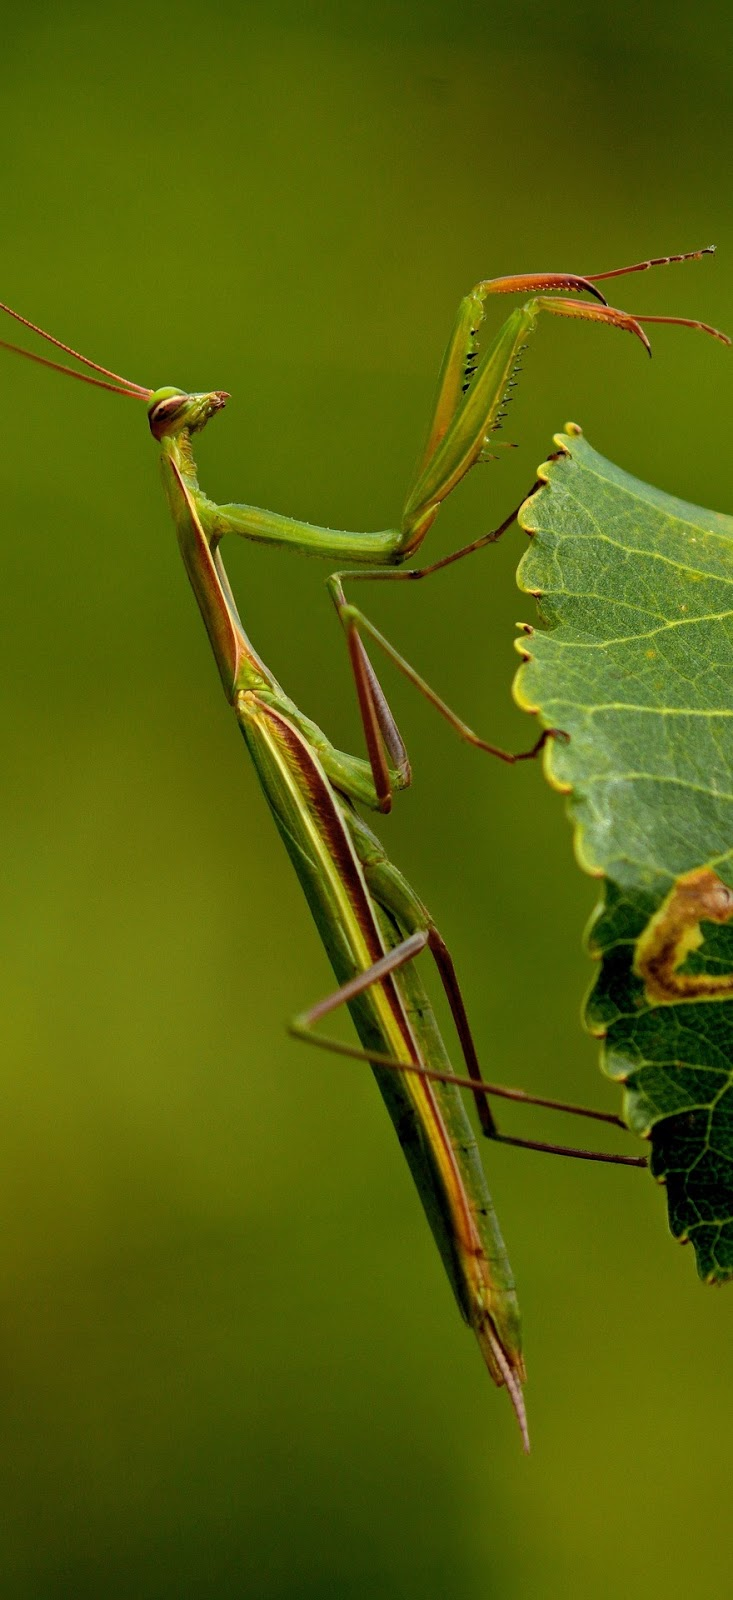 A praying mantis hanging from a leaf.